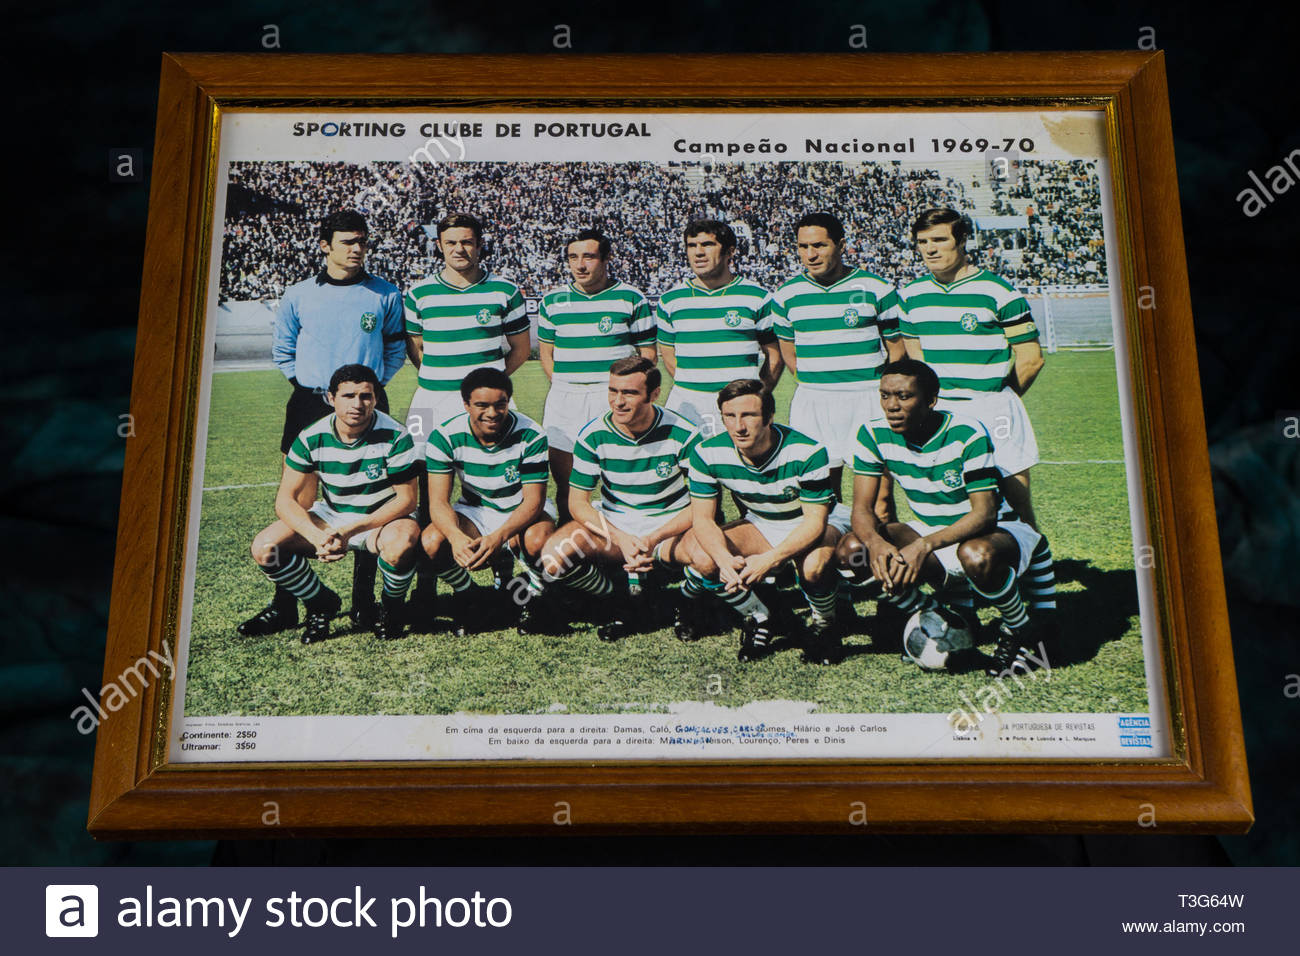 Sporting Clube De Portugal team picture postcard from the 1969, 1970 championship. - Stock Image